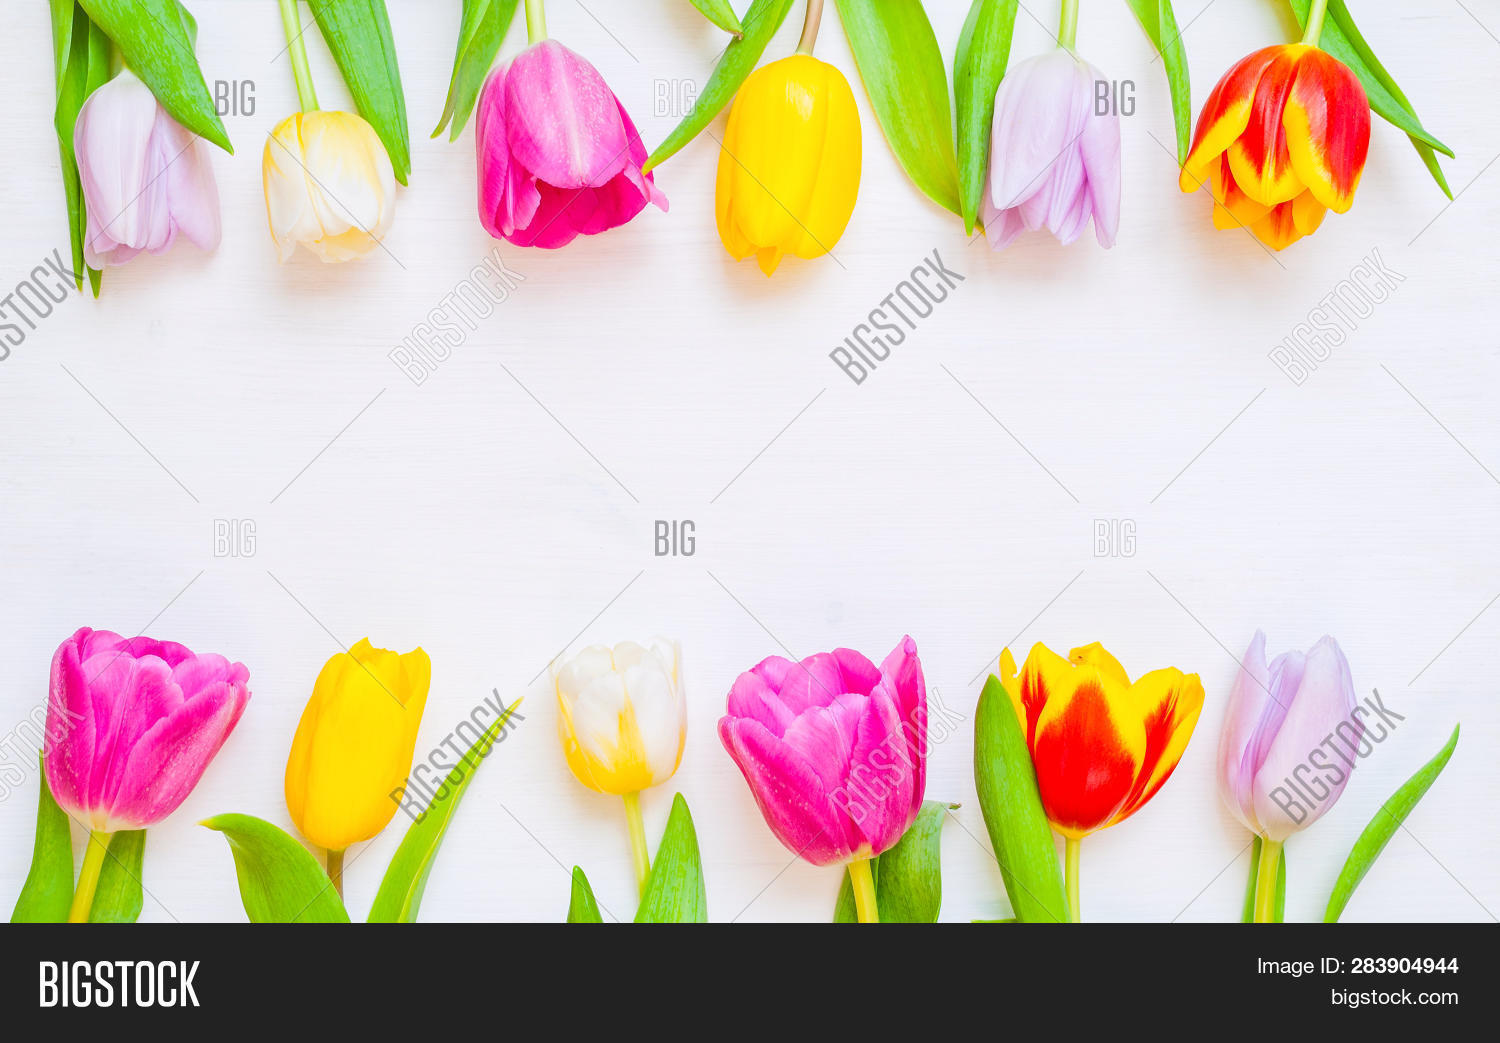 aroma,background,beautiful,birthday,bouquet,celebrate,day,event,floral,focus,fresh,gift,leaf,love,mother,nature,petal,pink,rustic,selective,spring,spring-blossom,spring-border,spring-composition,spring-design,spring-flower,spring-holiday,spring-postcard,spring-tulip,summer,valentine,wallpaper,wedding,wood